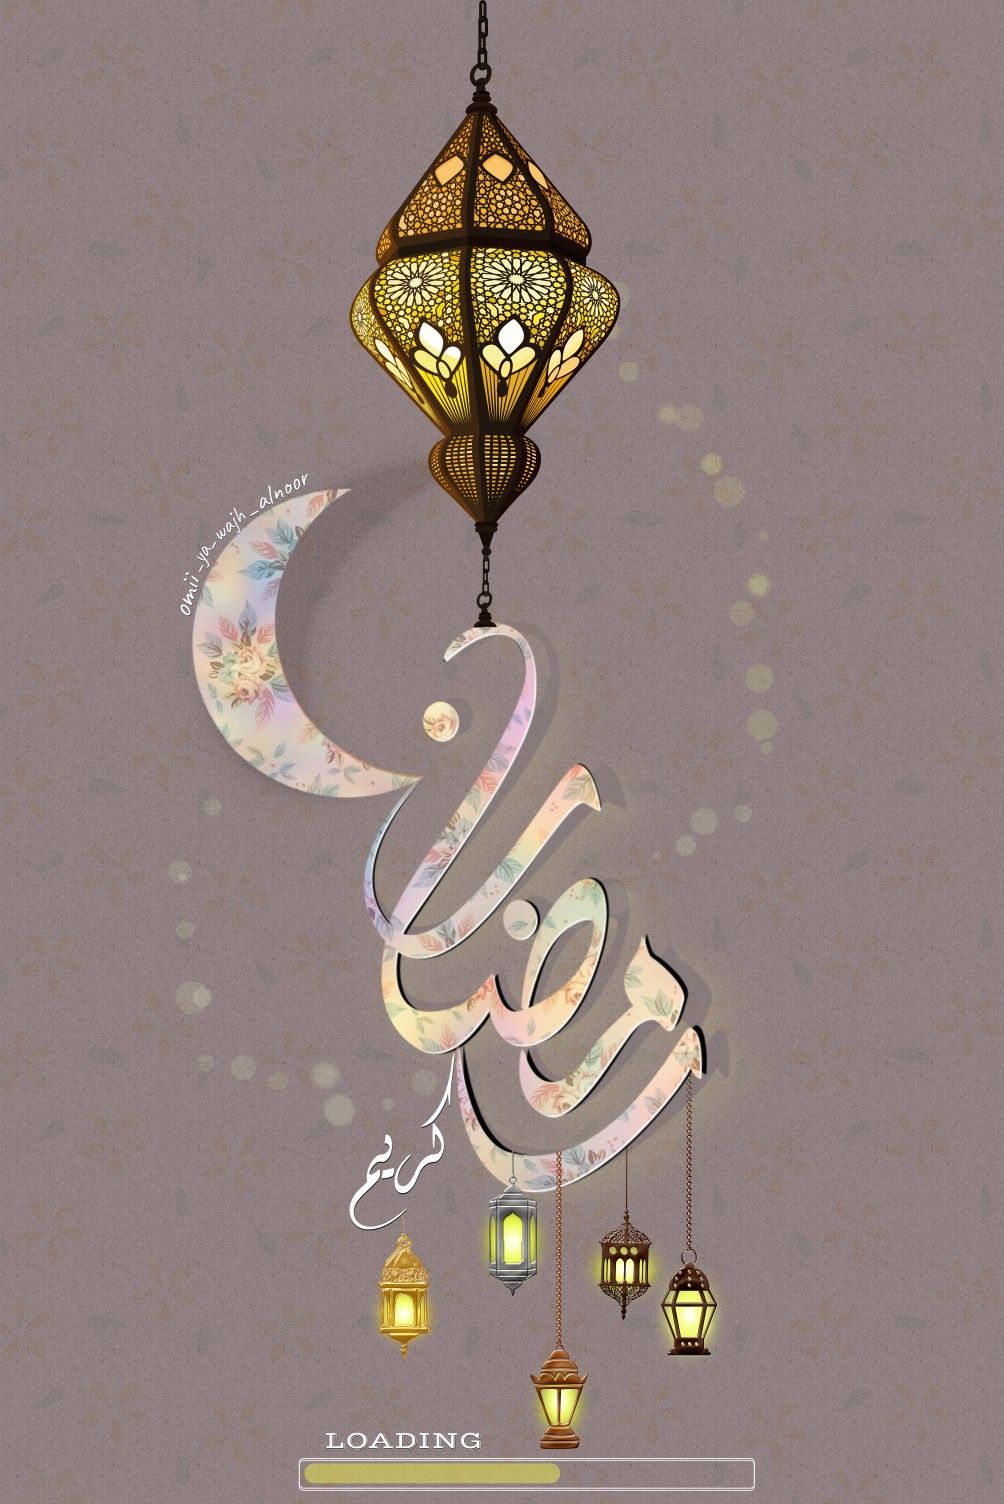 رمضان كريم Ramadan Kareem Decoration Ramadan Cards Ramadan Background